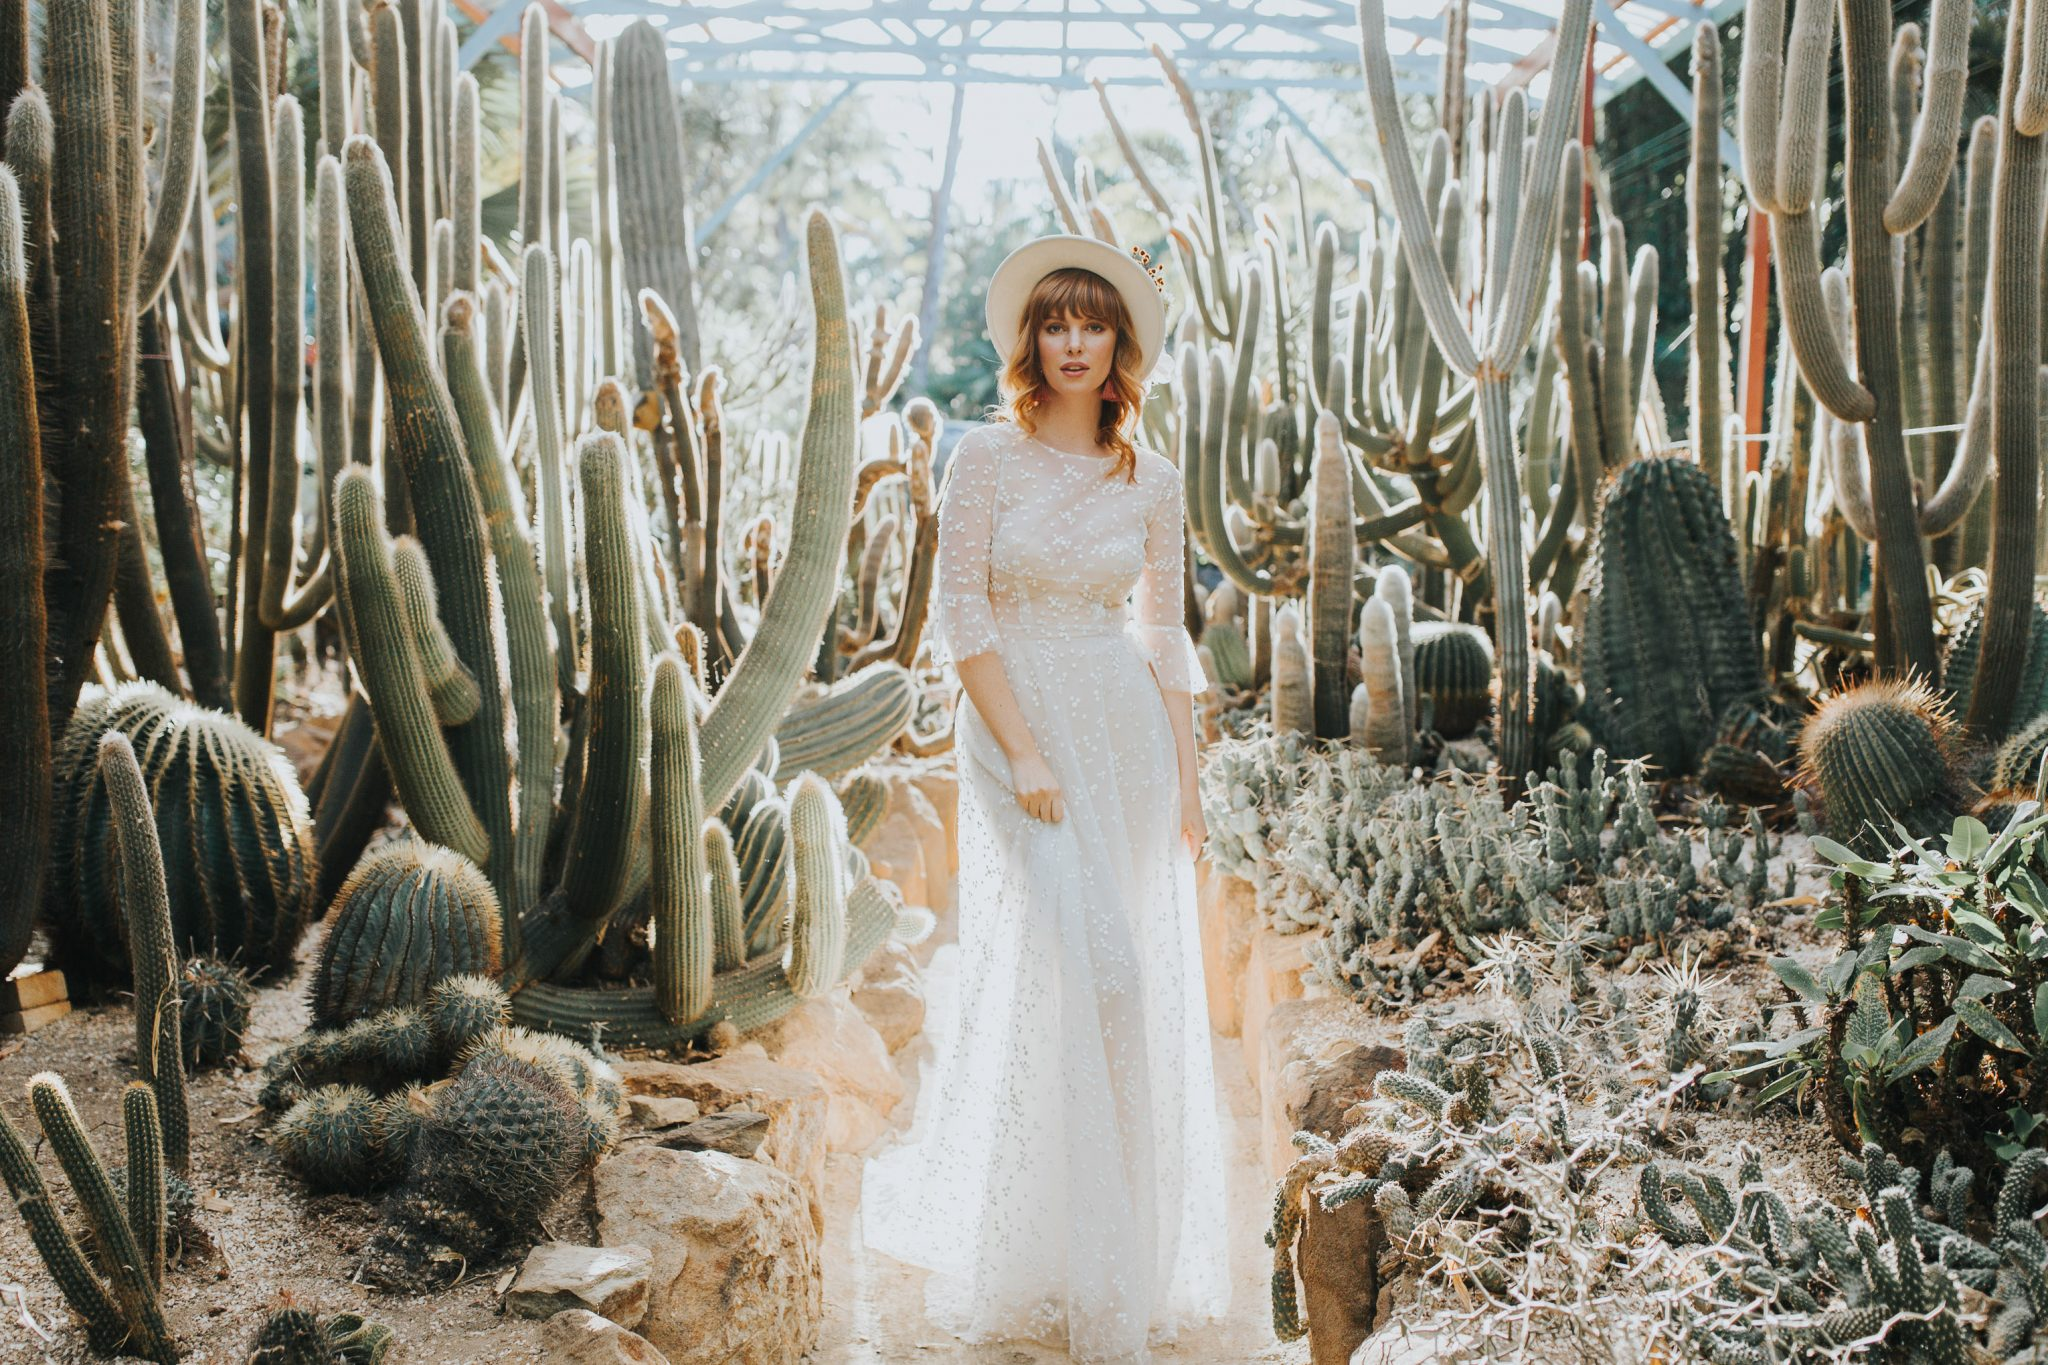 Categories: Fashion, Flora + Styling-Cactus Love by Ella & Me